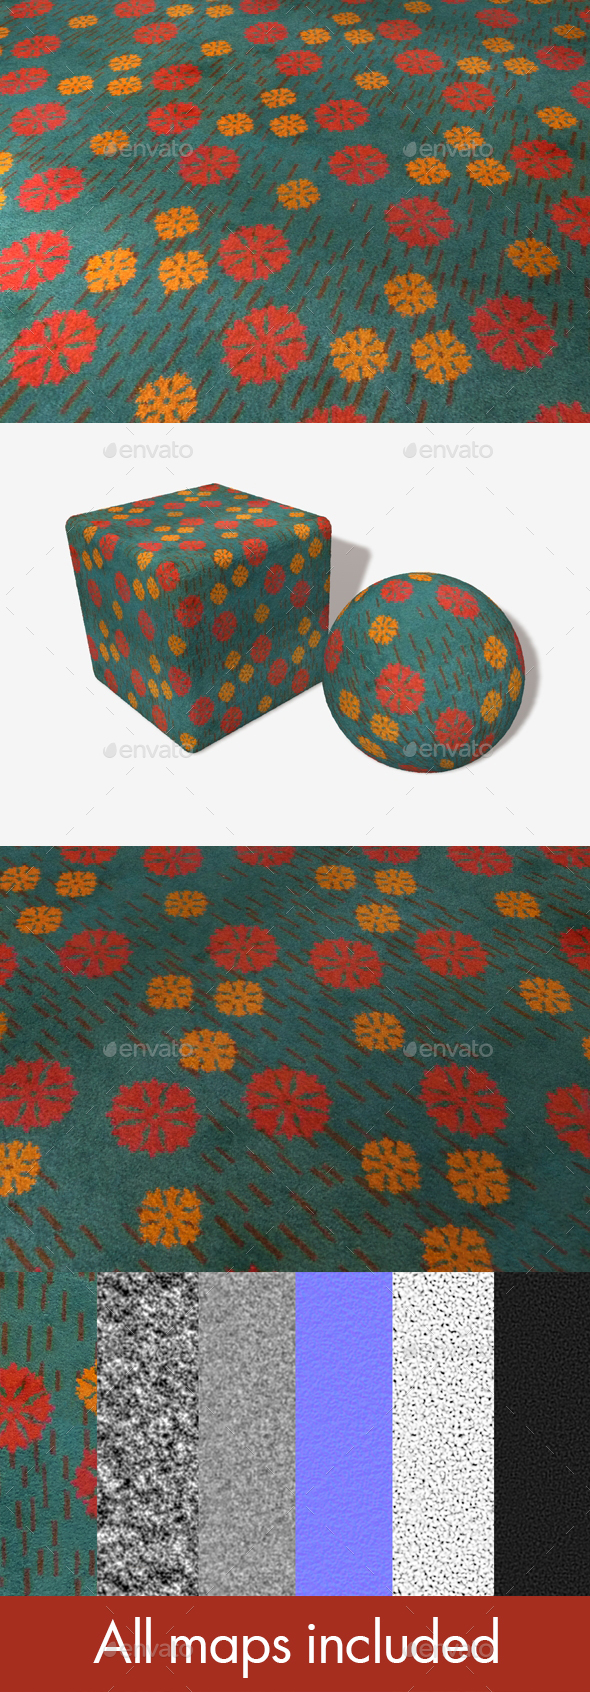 Floral Carpet Seamless Texture - 3DOcean Item for Sale